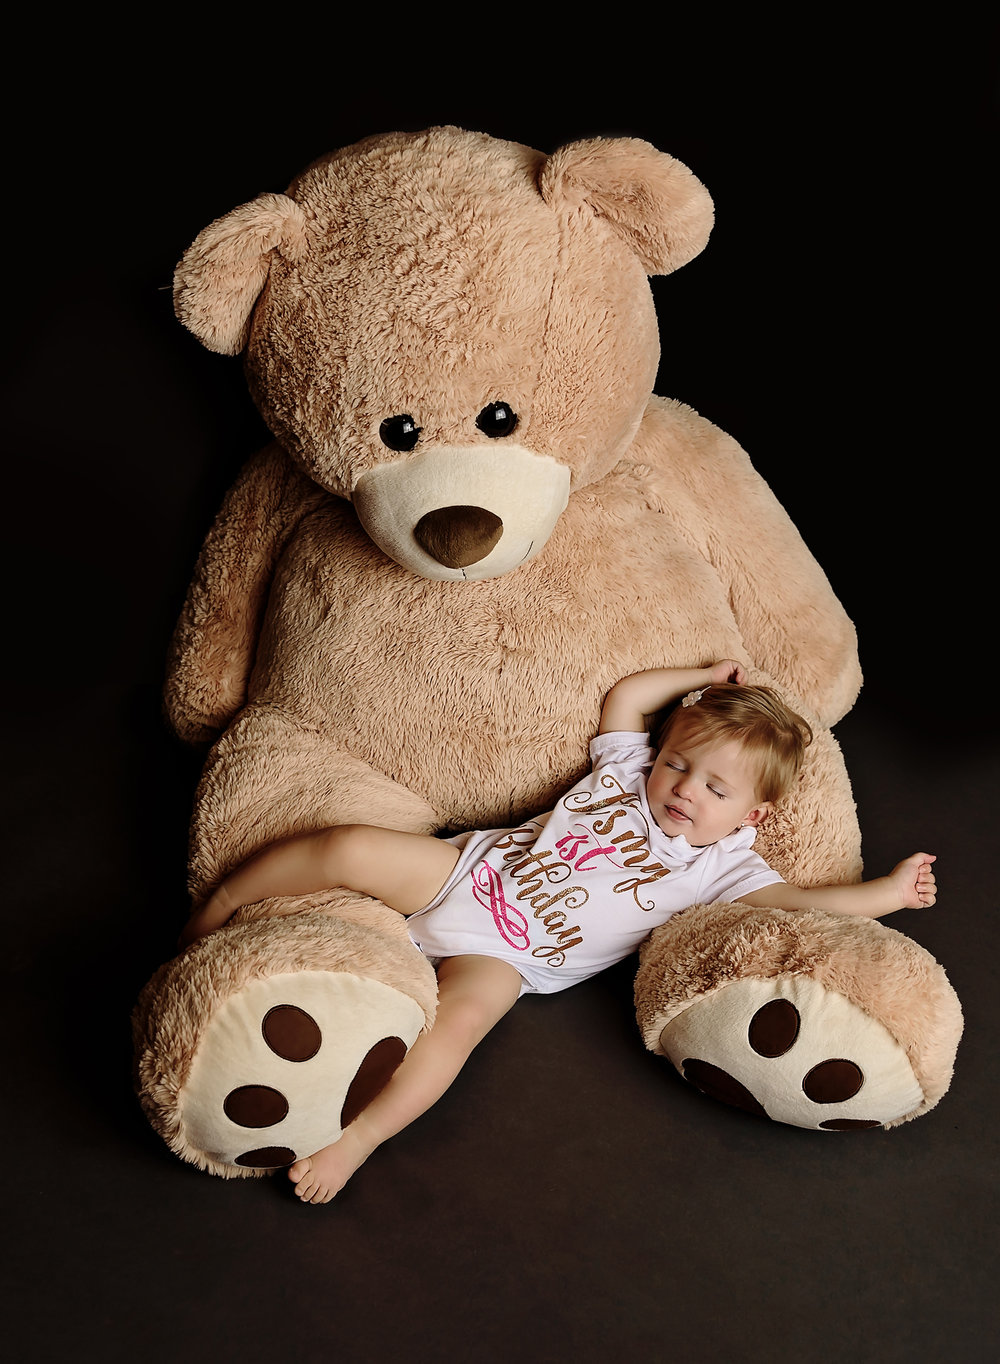 Baby girl asleep with giant stuffed bear